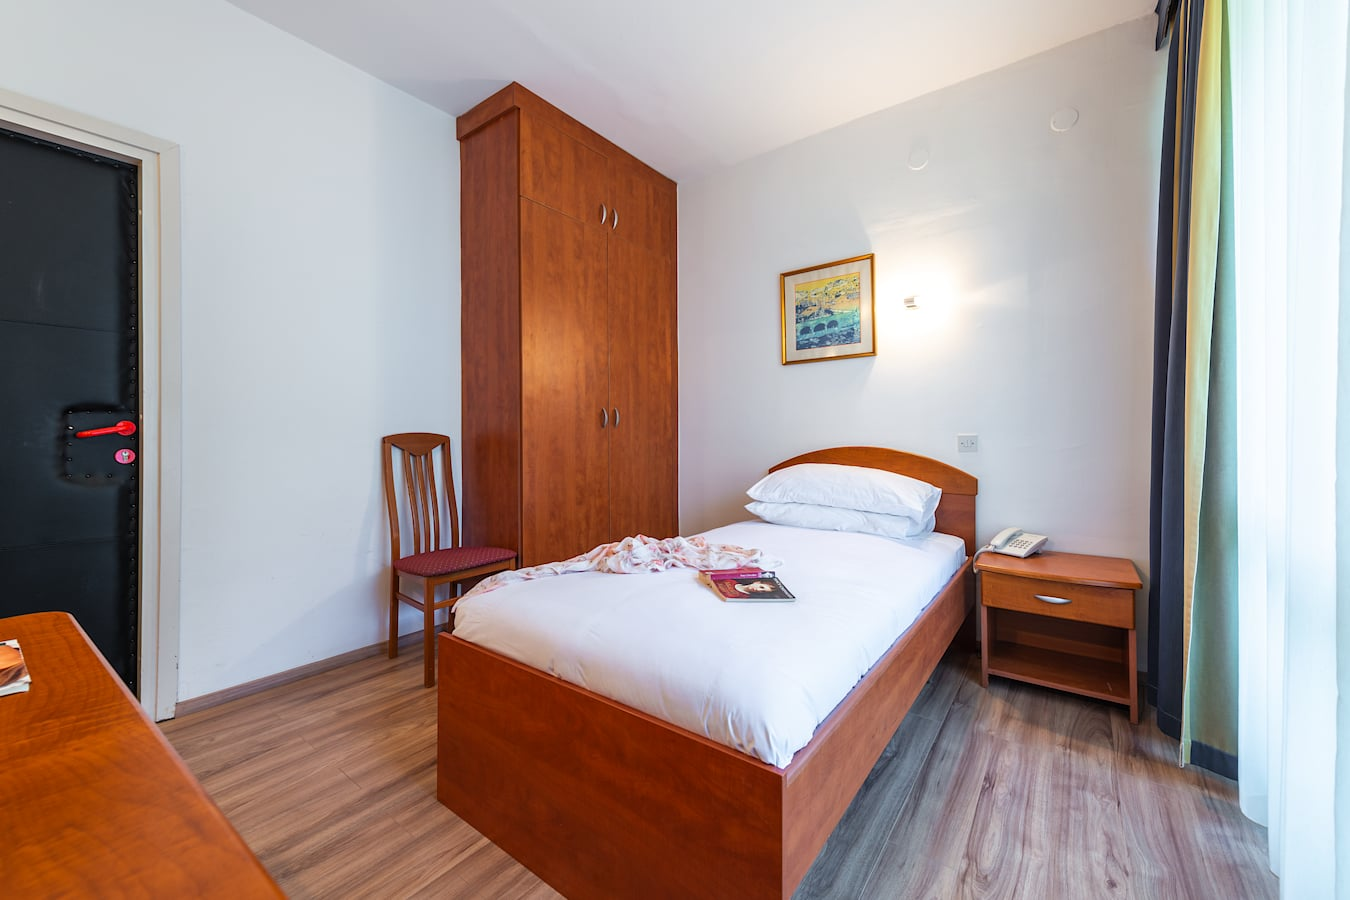 vis-hotel-dubrovnik-single-room-balcony-parkside.jpg